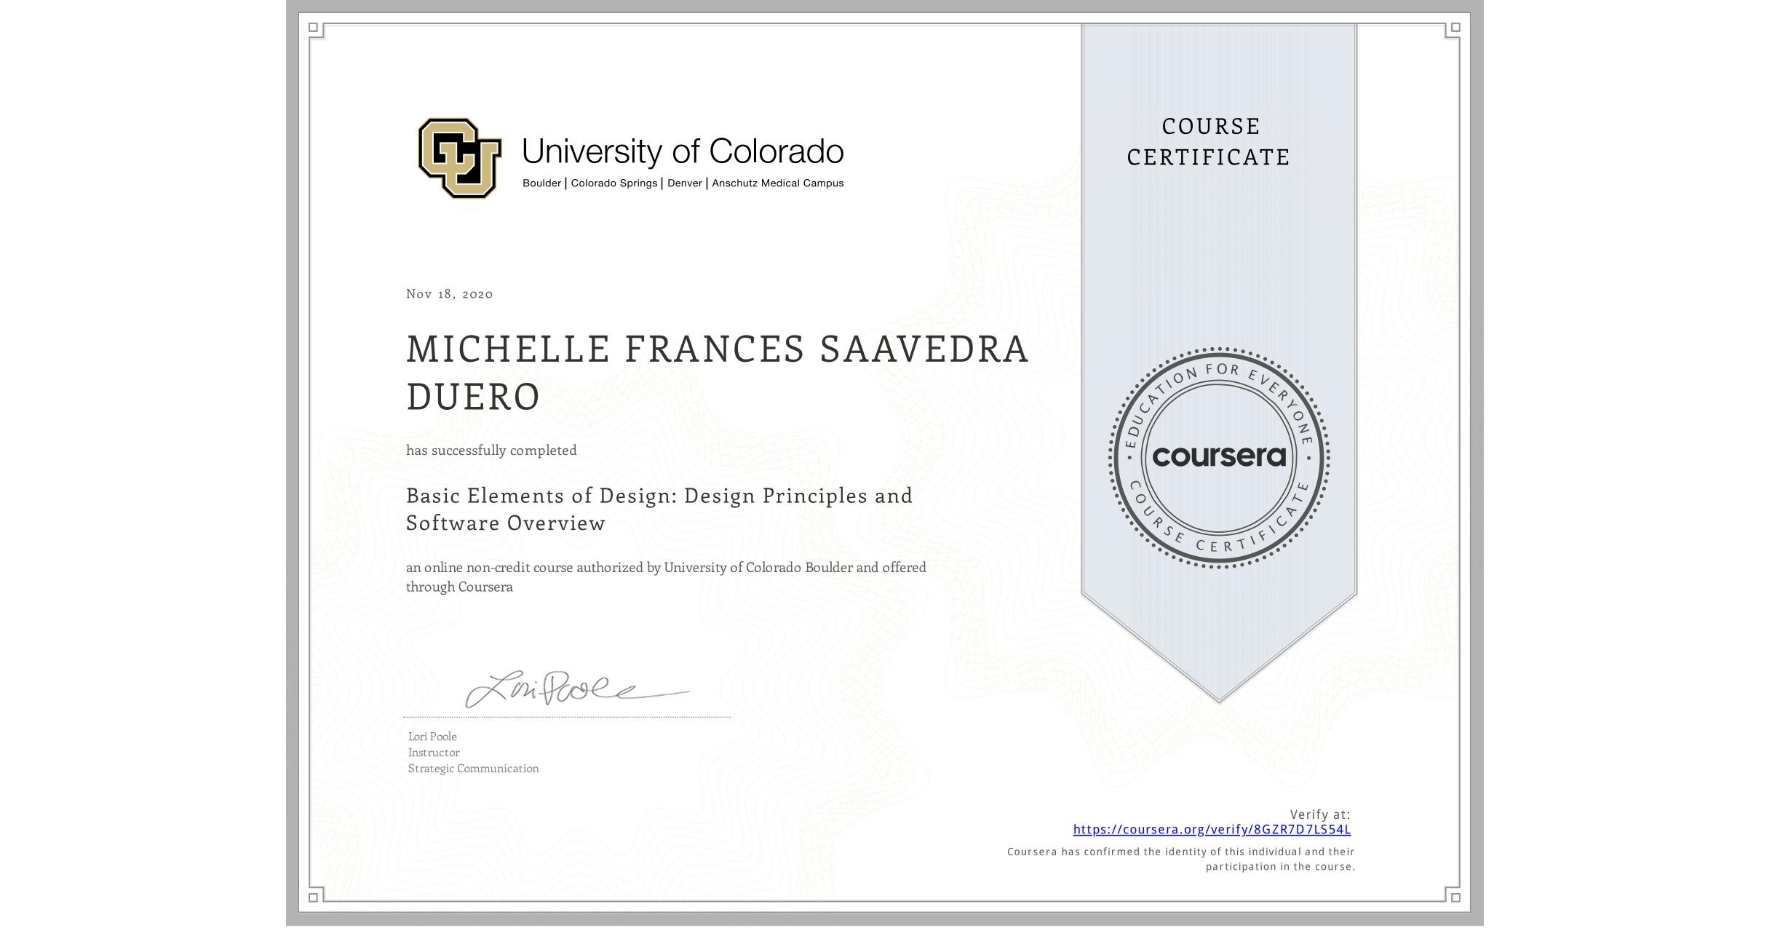 View certificate for MICHELLE FRANCES  SAAVEDRA DUERO, Basic Elements of Design: Design Principles and Software Overview, an online non-credit course authorized by University of Colorado Boulder and offered through Coursera